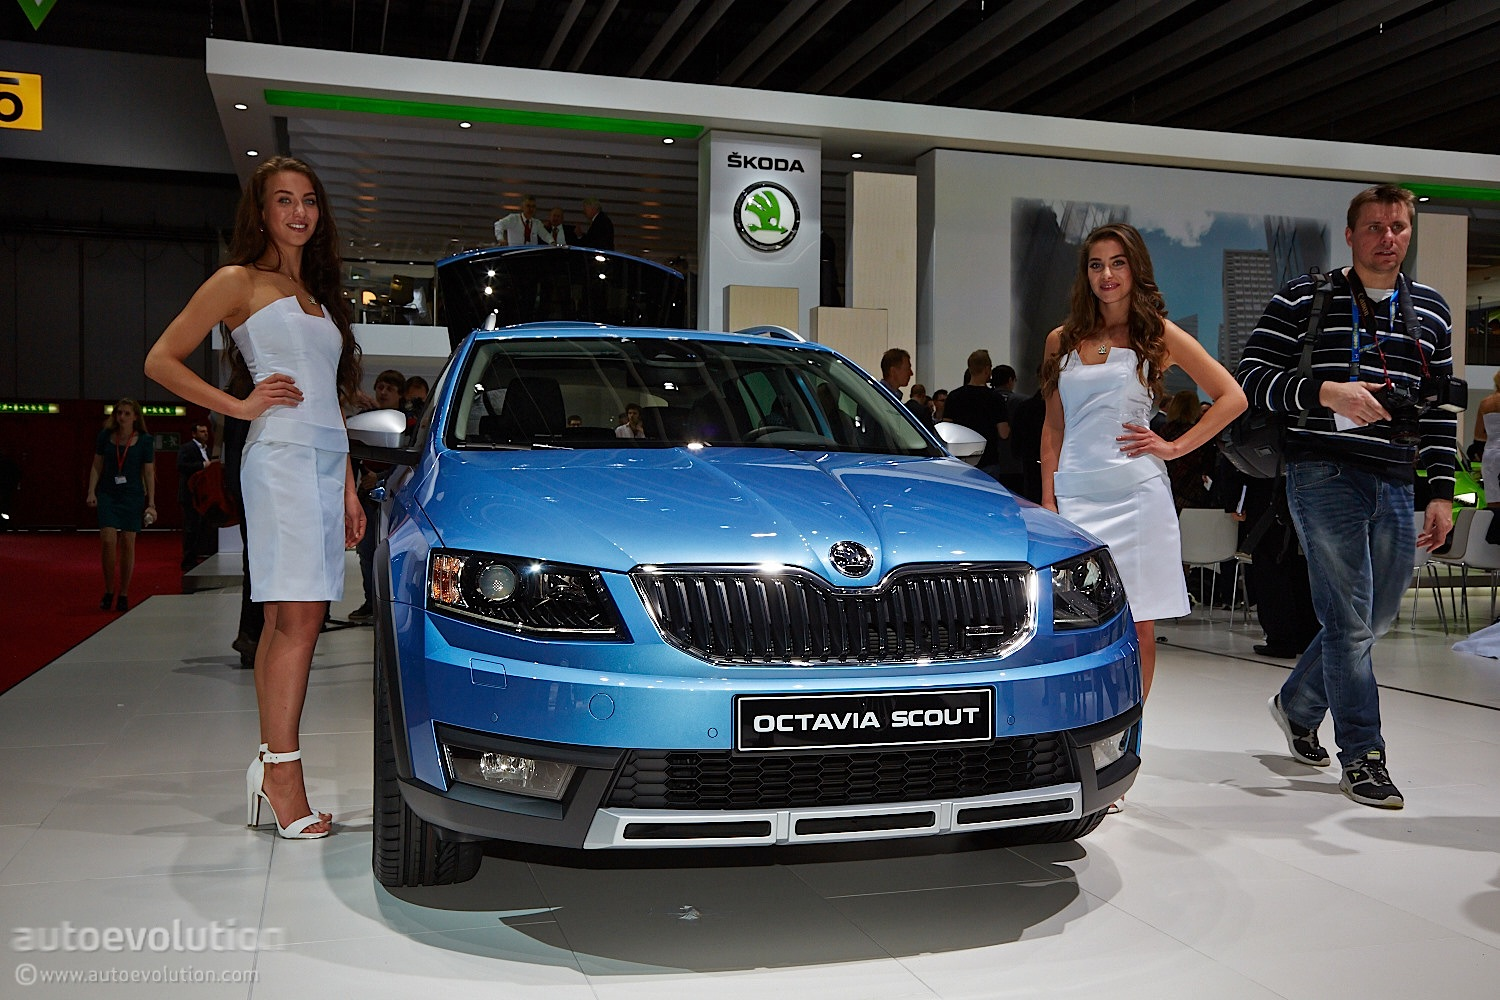 skoda octavia scout is an estate built for adventures at